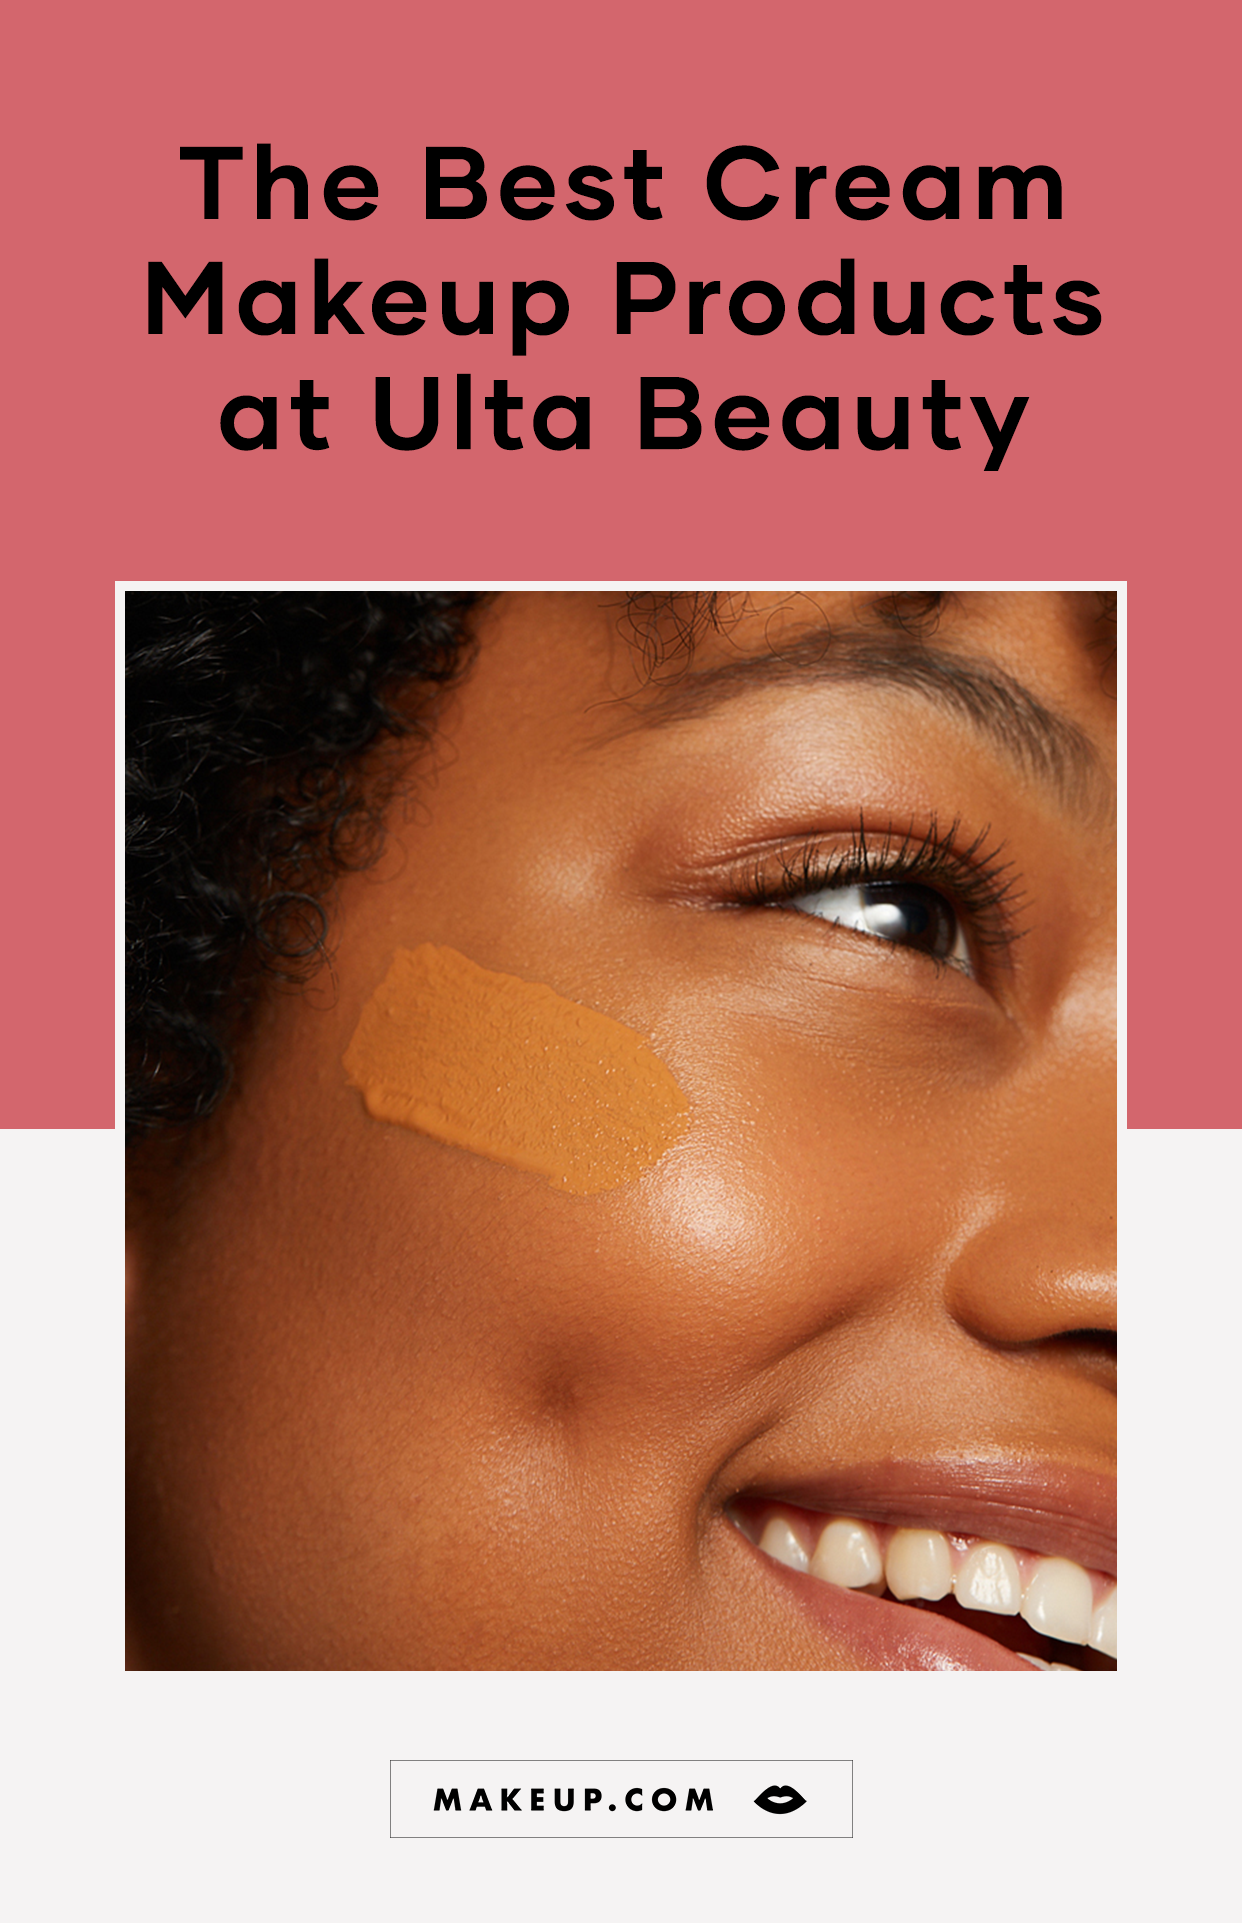 Creamy, Blush and Concealer Products at Ulta Beauty